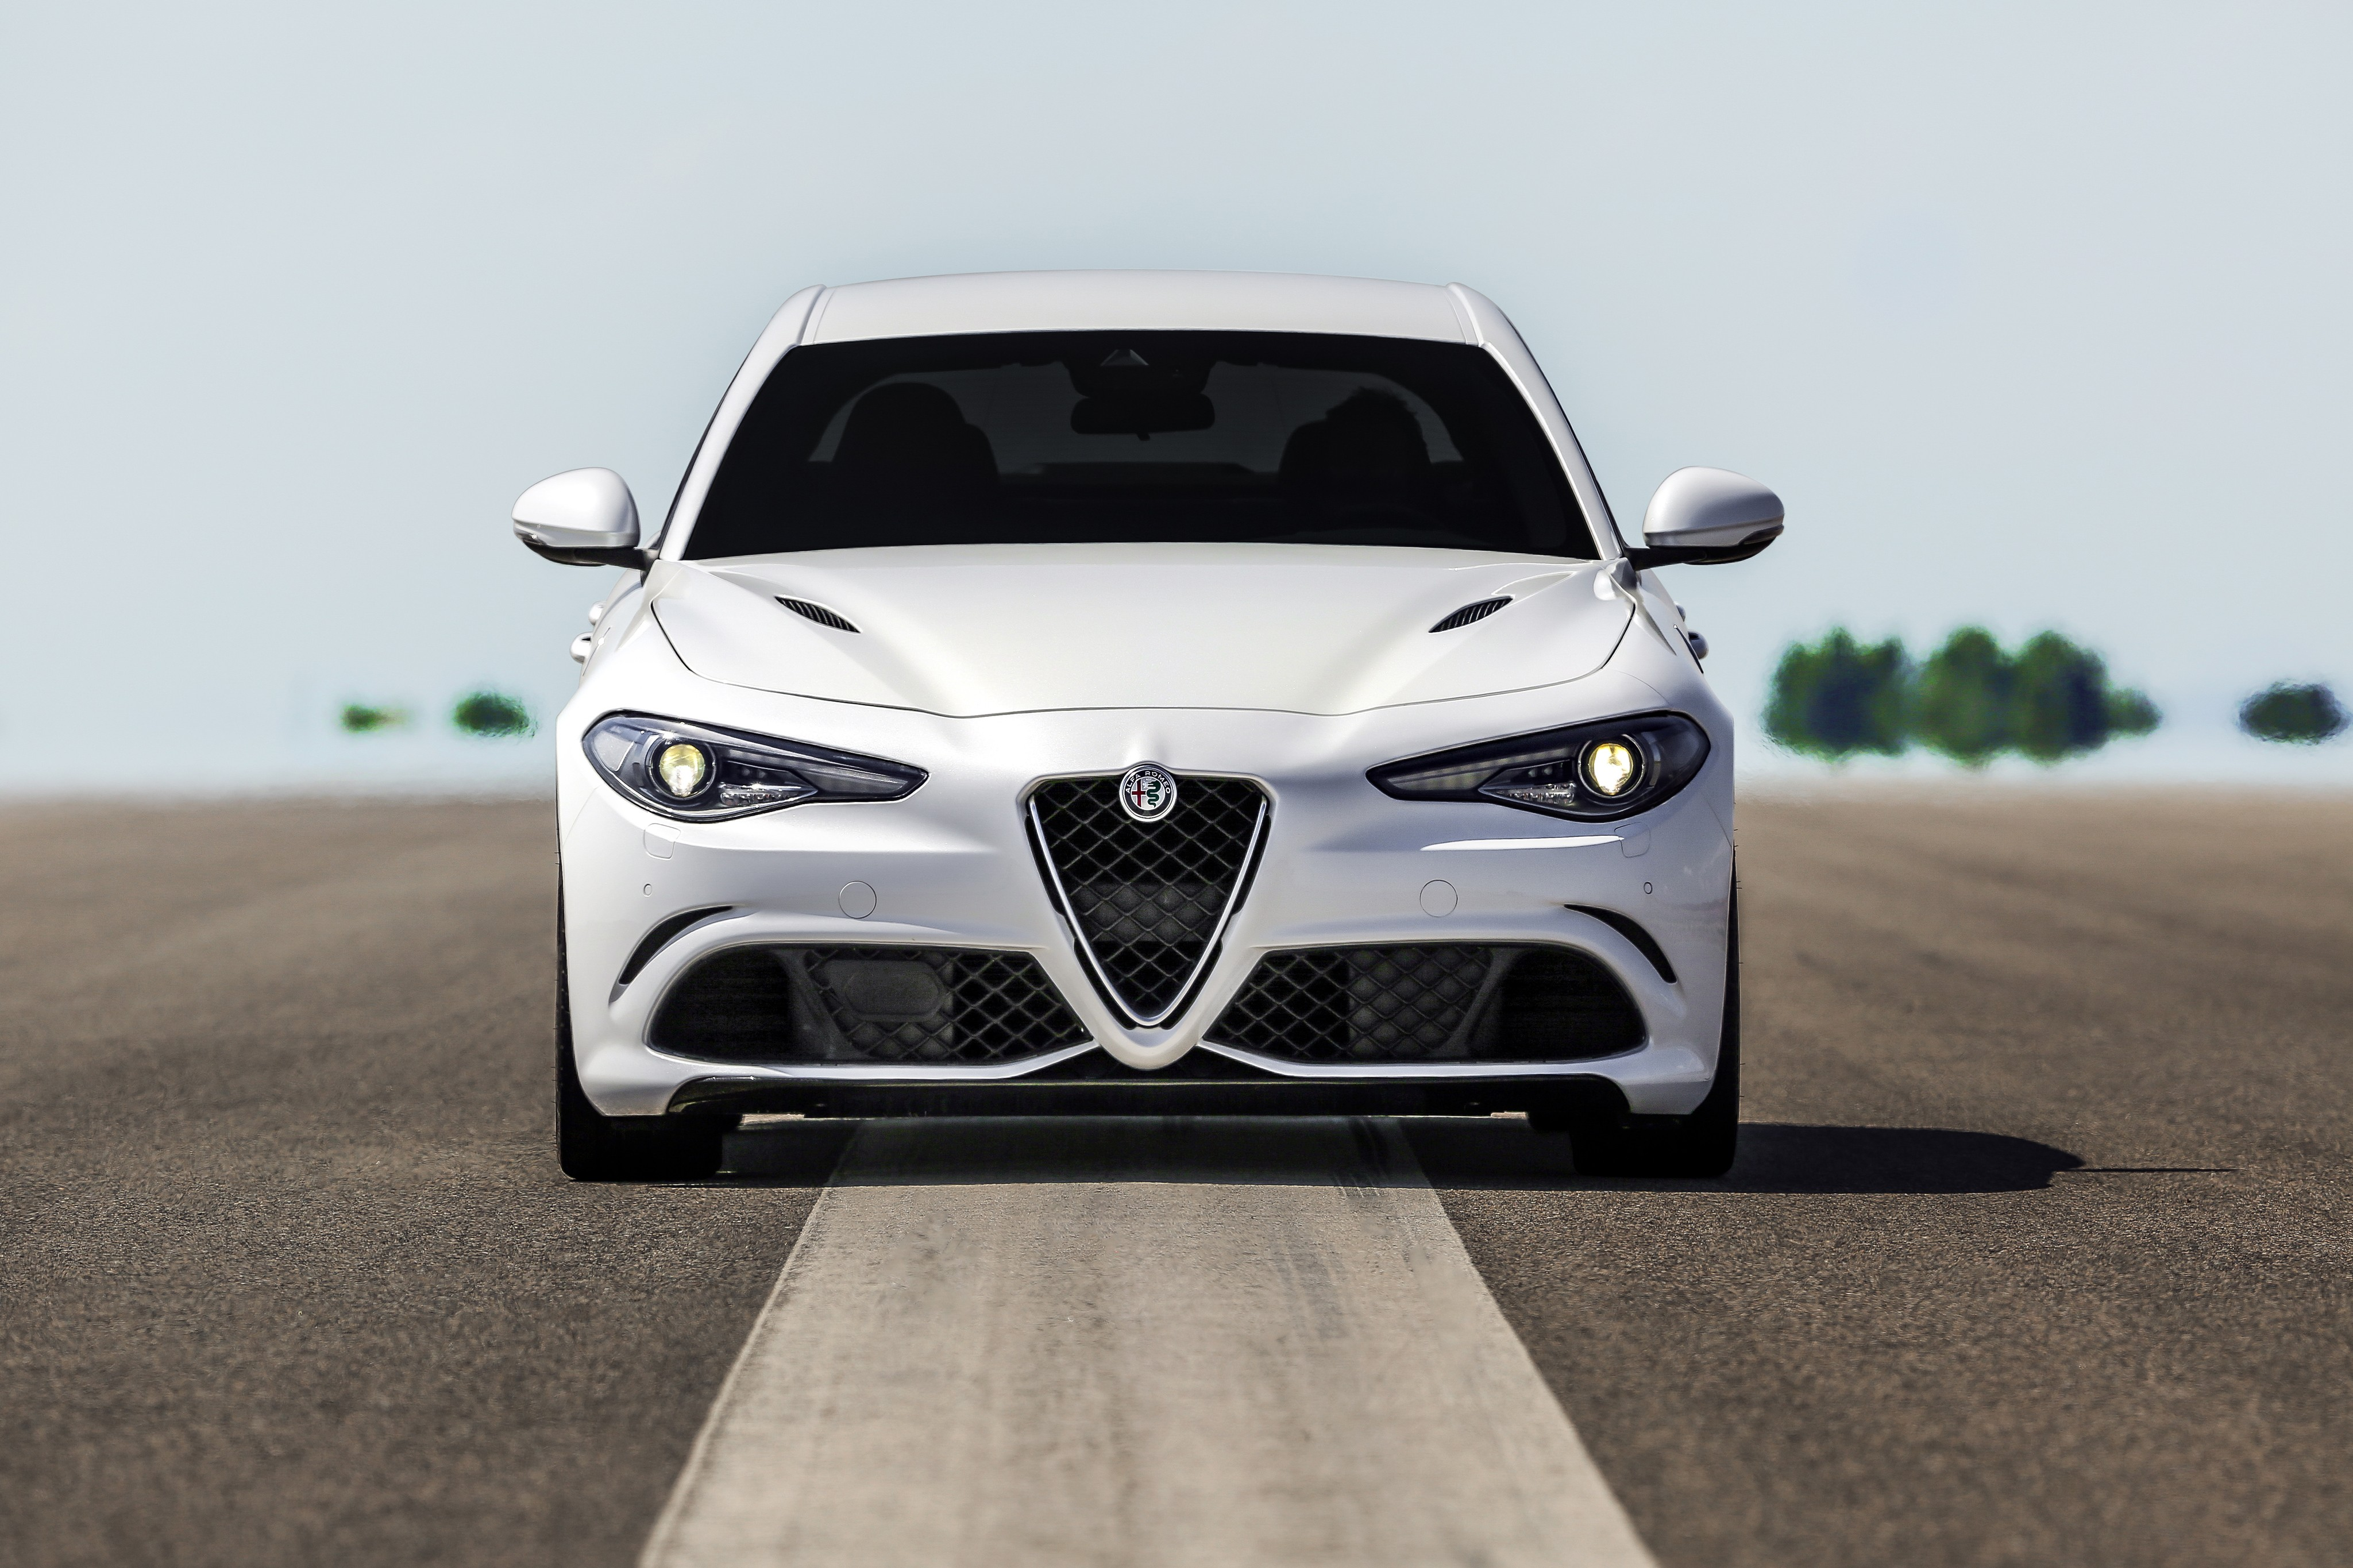 Alfa Romeo Giulietta accessories photo